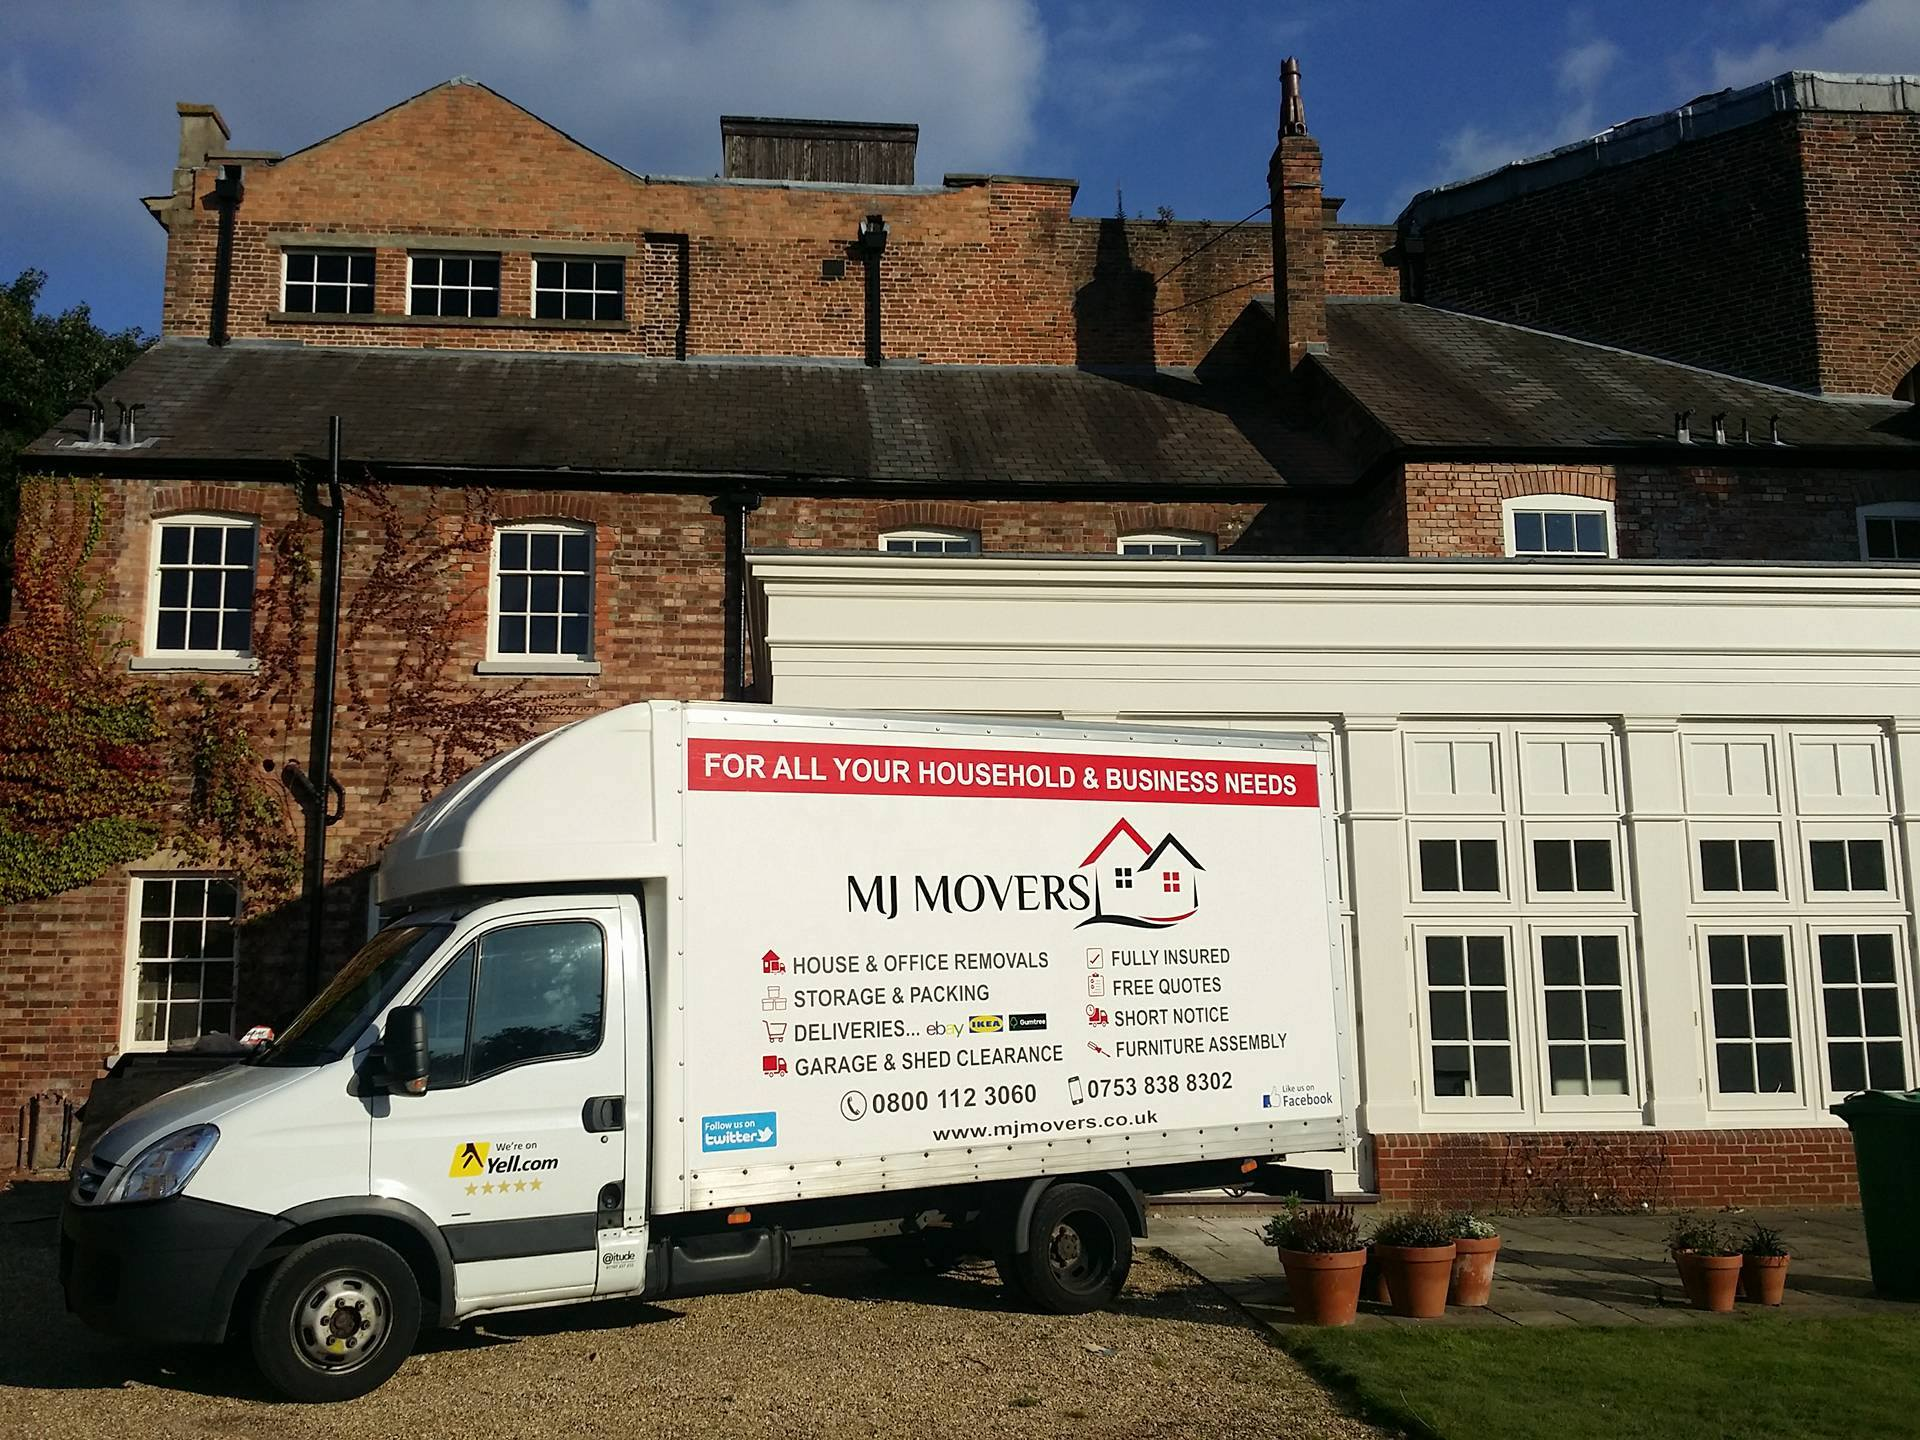 MJ Movers - House and Office Removals & Man with a Van Services